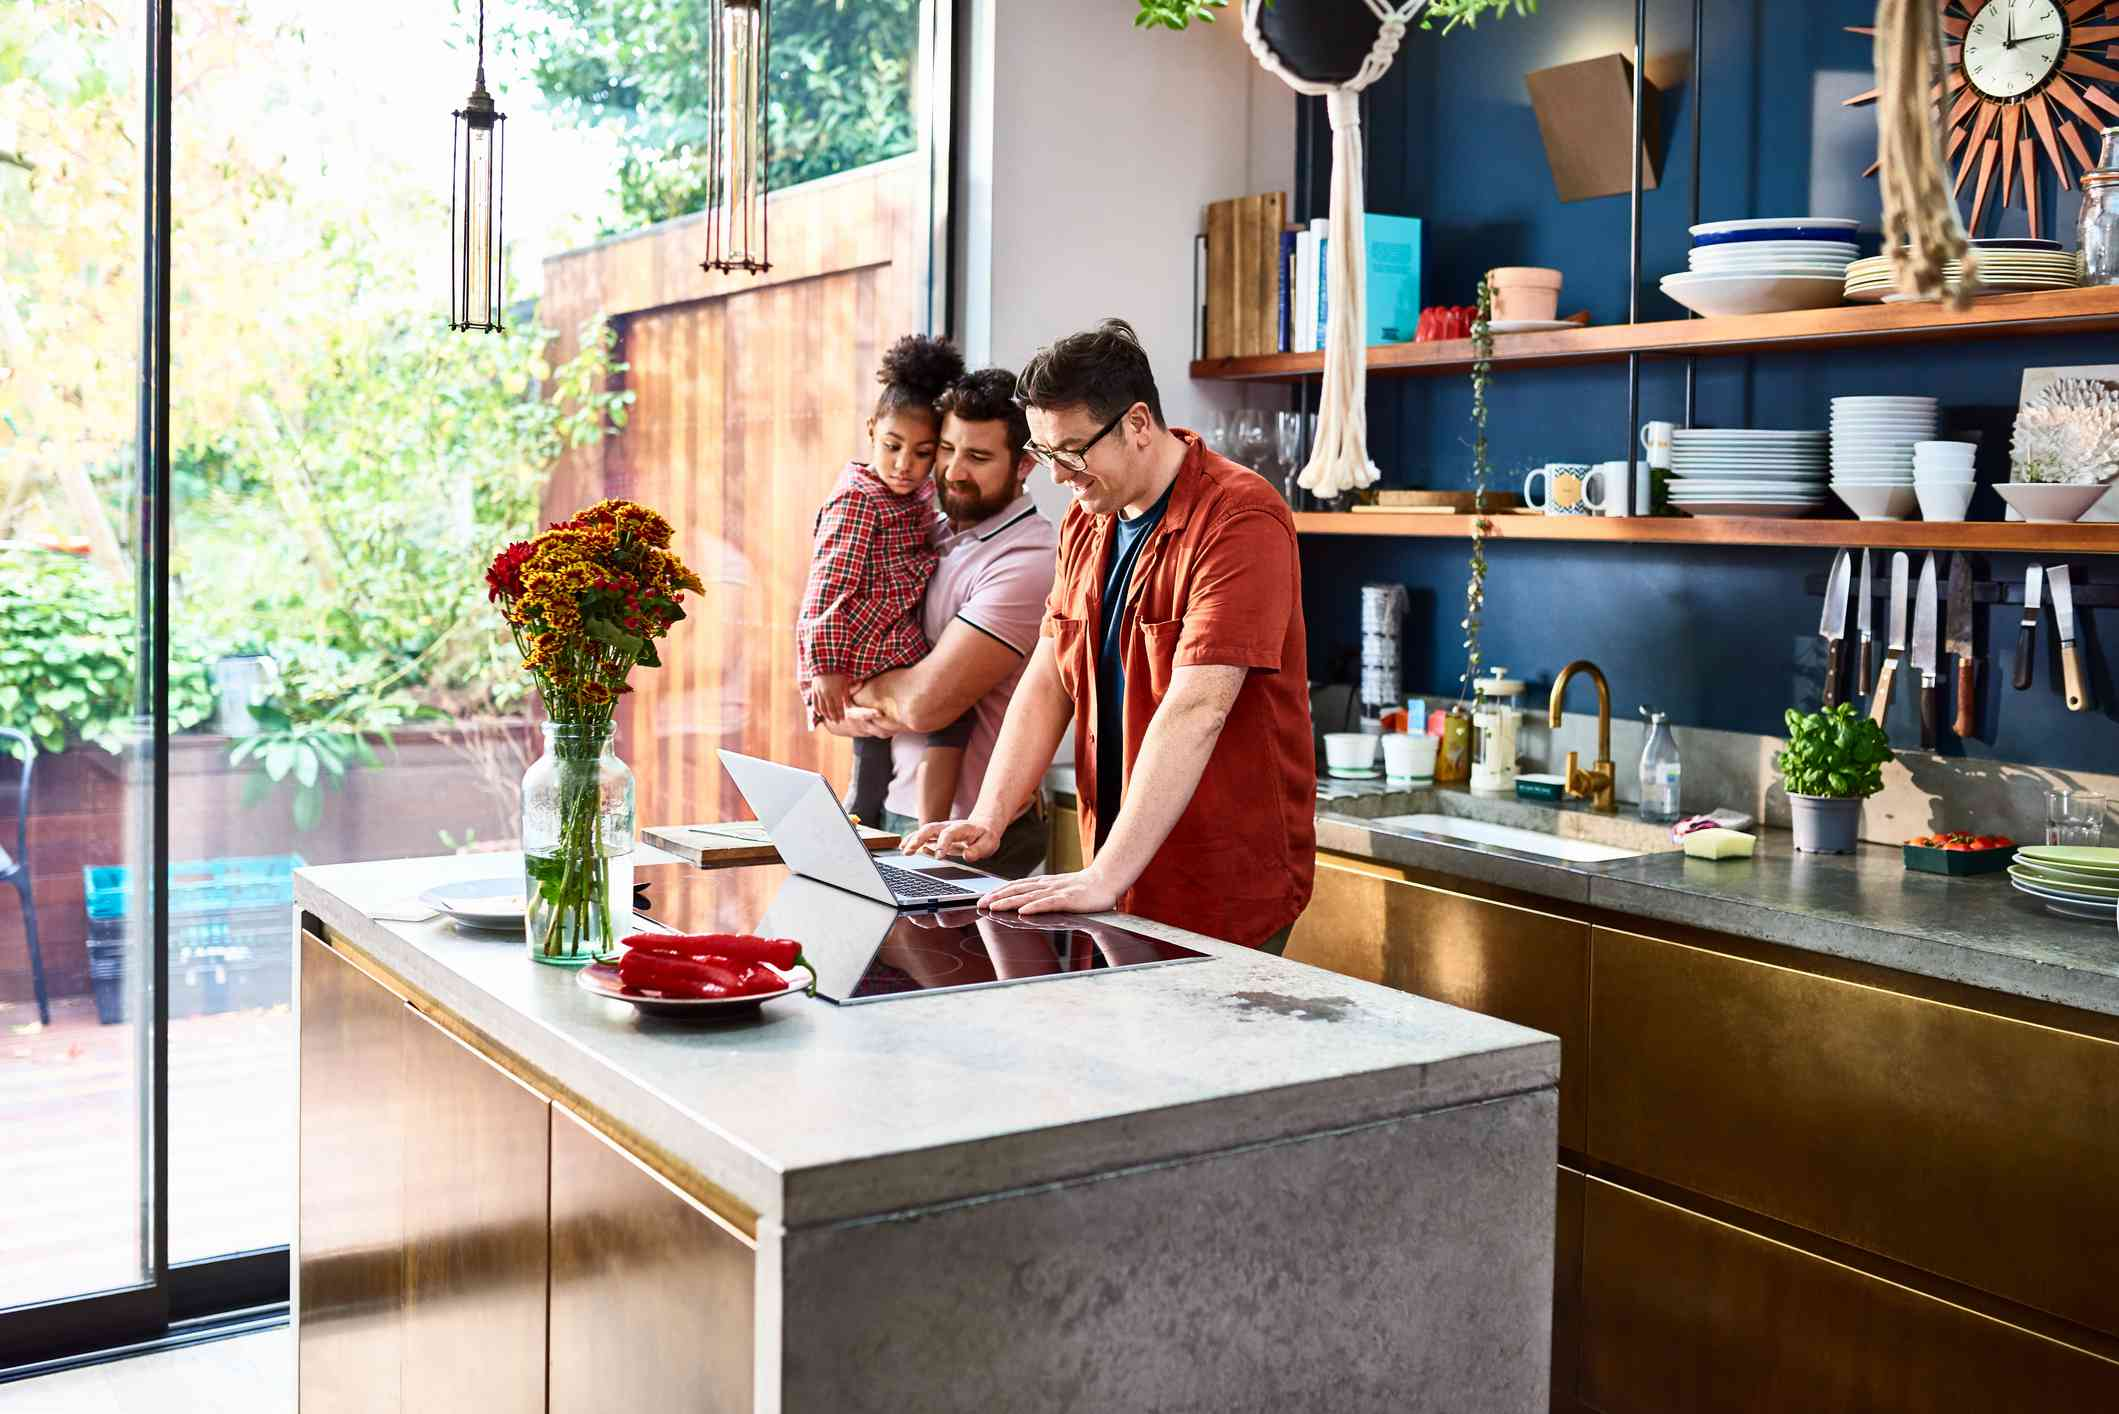 A couple, one holding a child, looking at a laptop in the kitchen of a home.